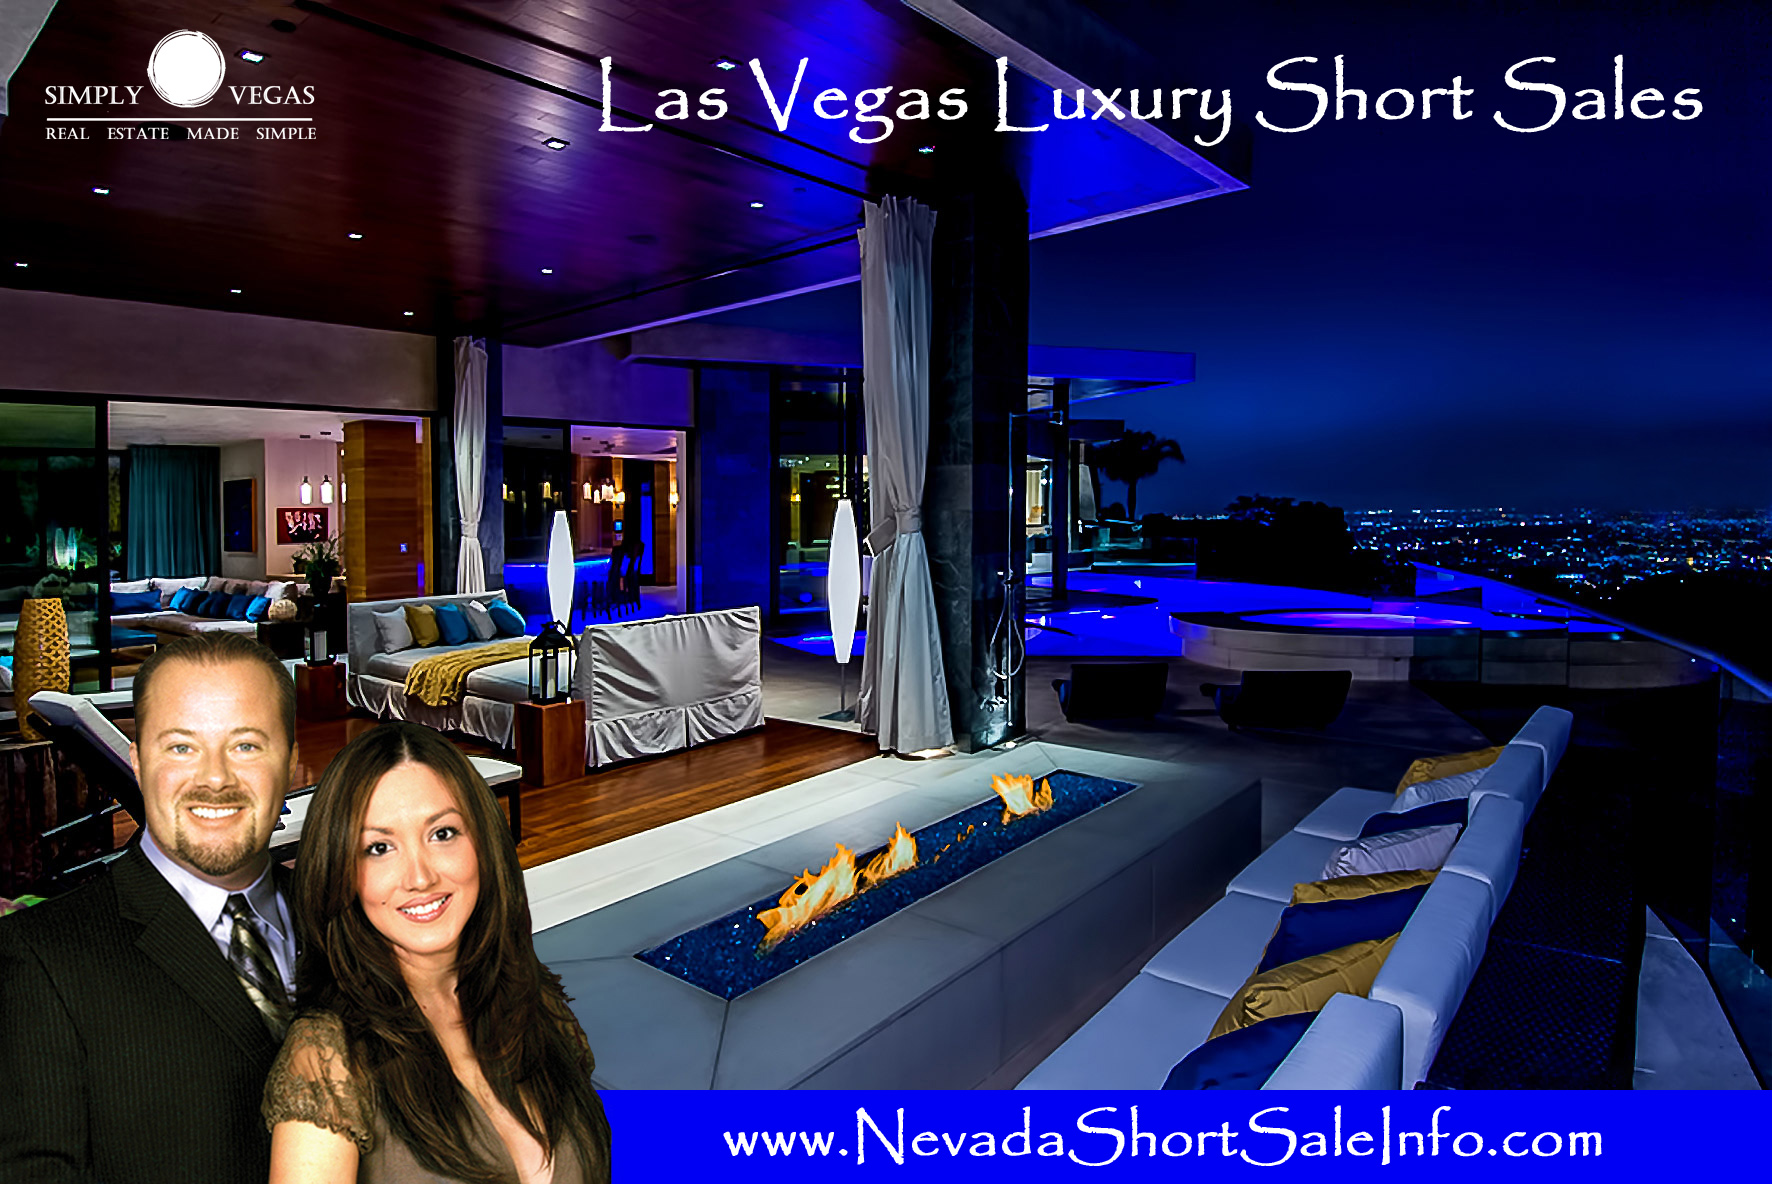 Las Vegas Short Sale Realtor